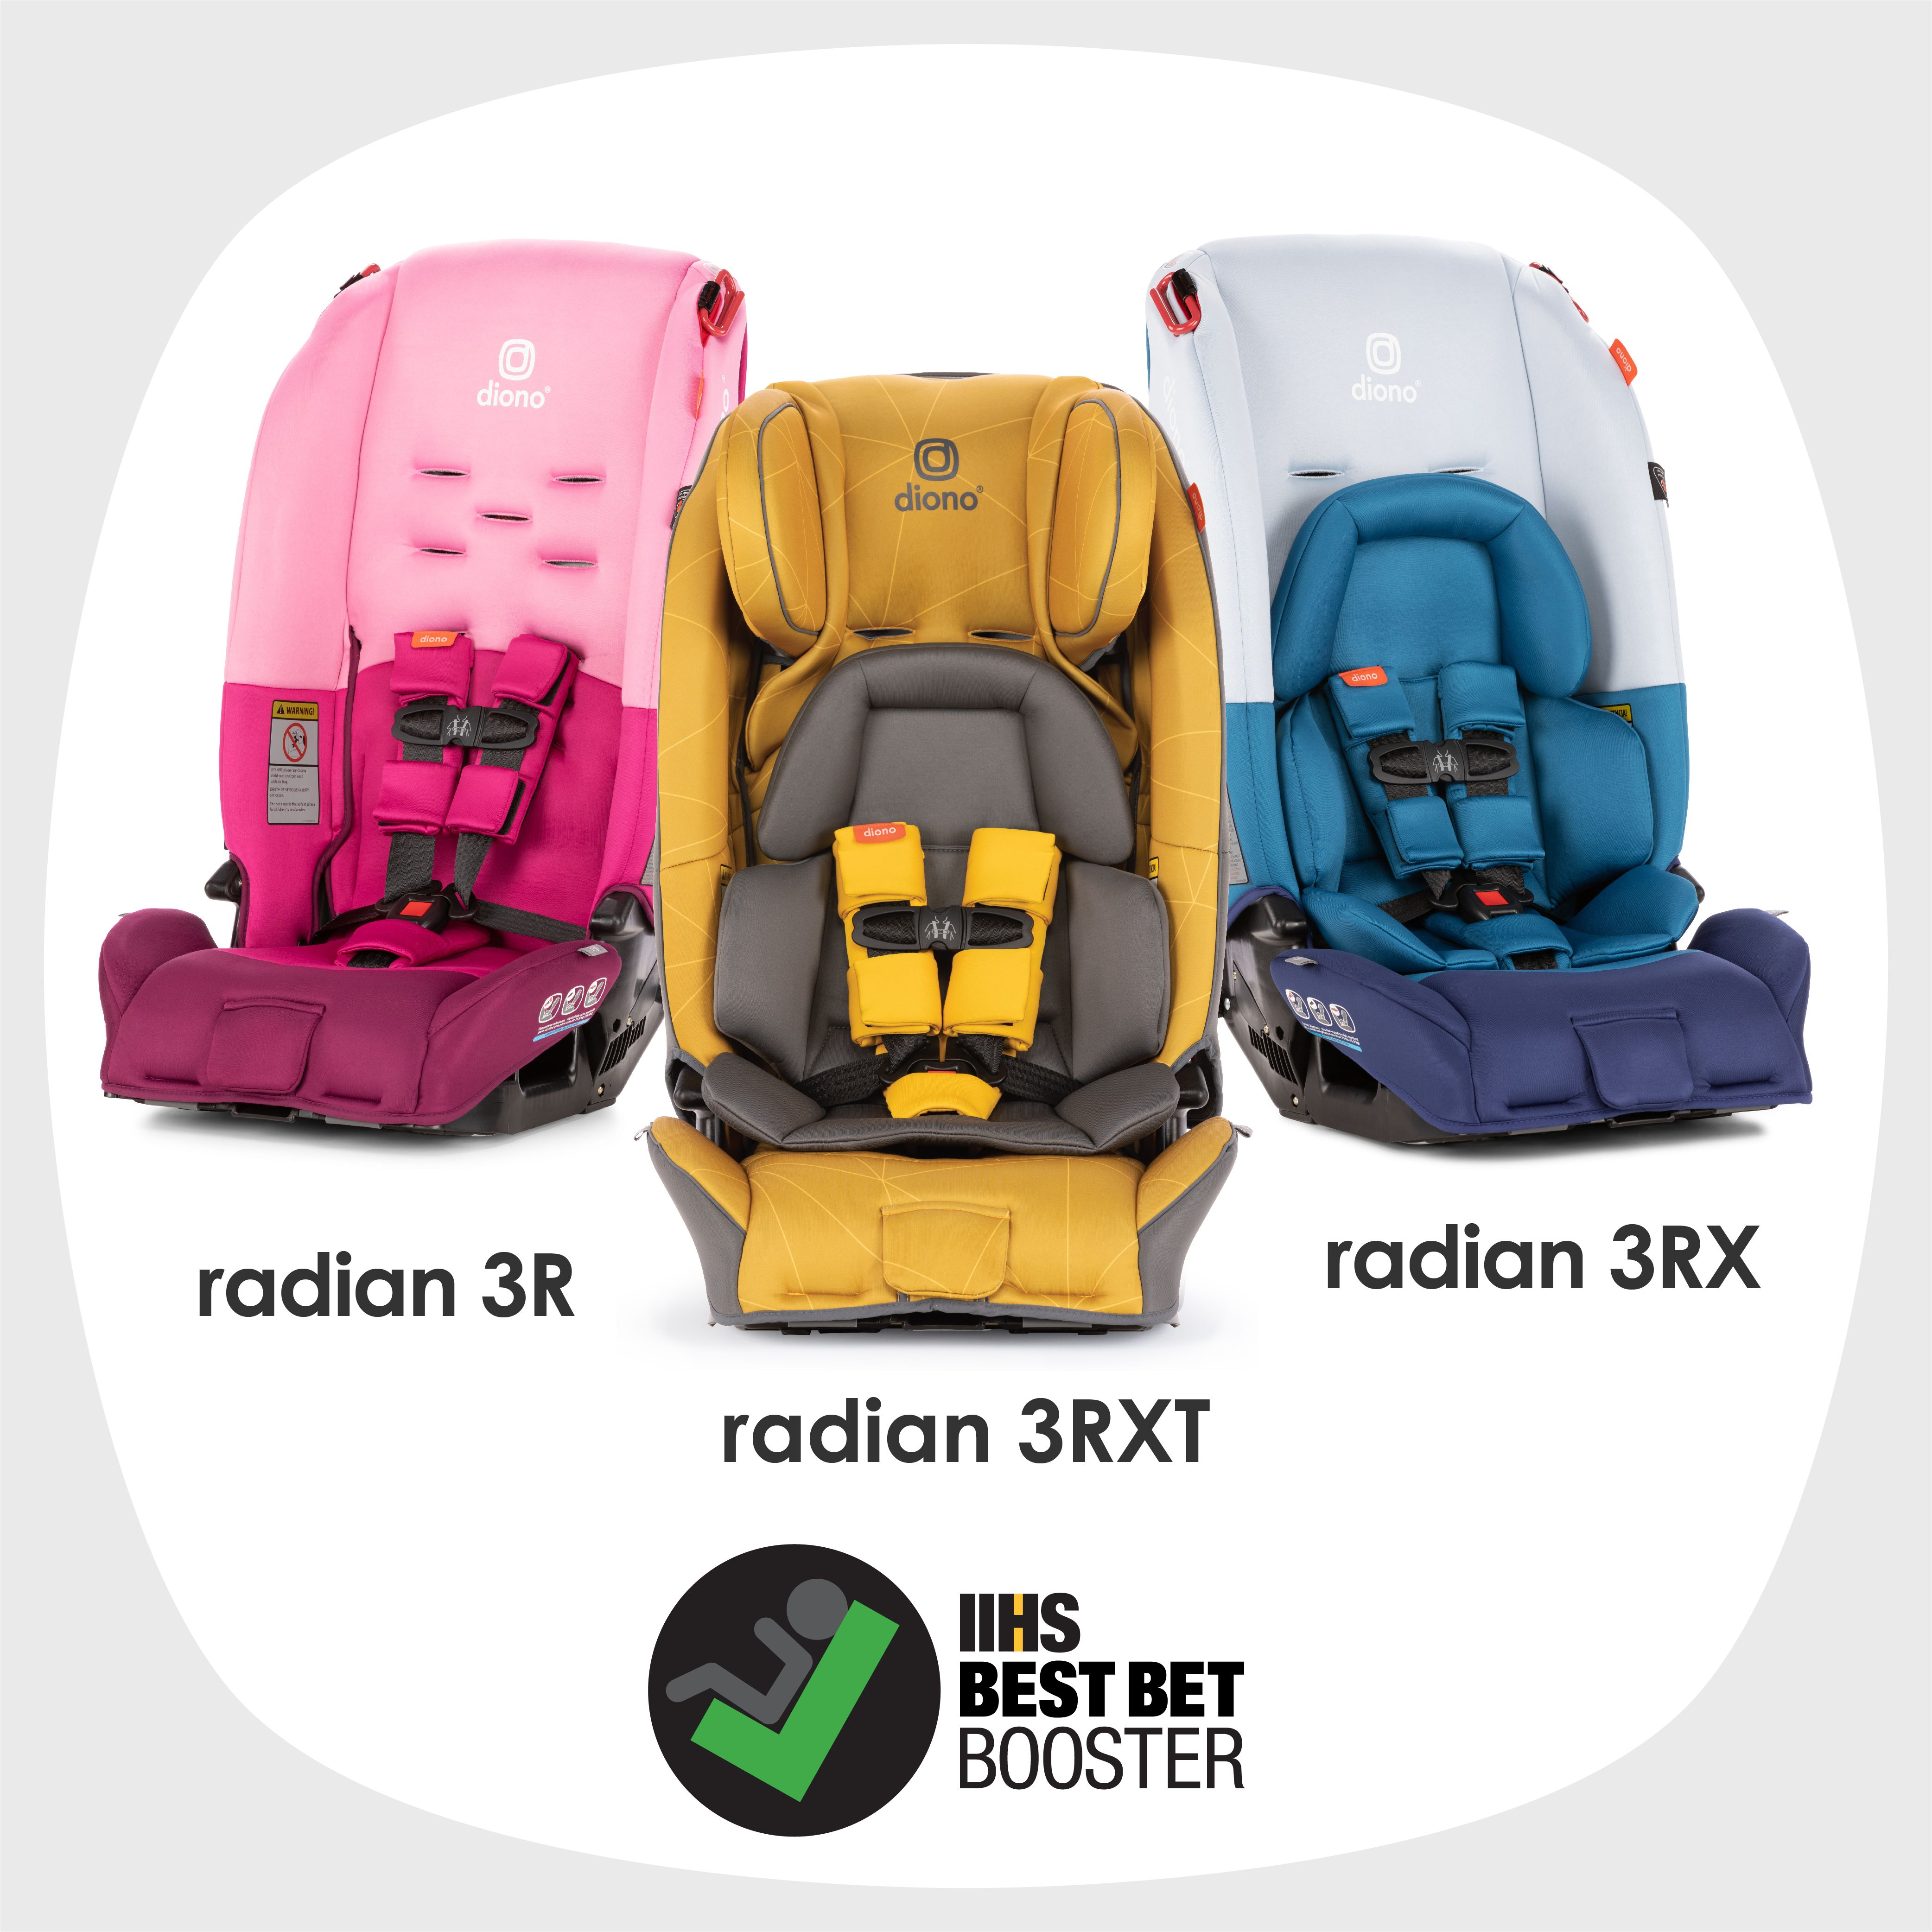 Radian Seats Are Iihs Best Bet Boosters Baby Car Seats Car Seats Diono Car Seat